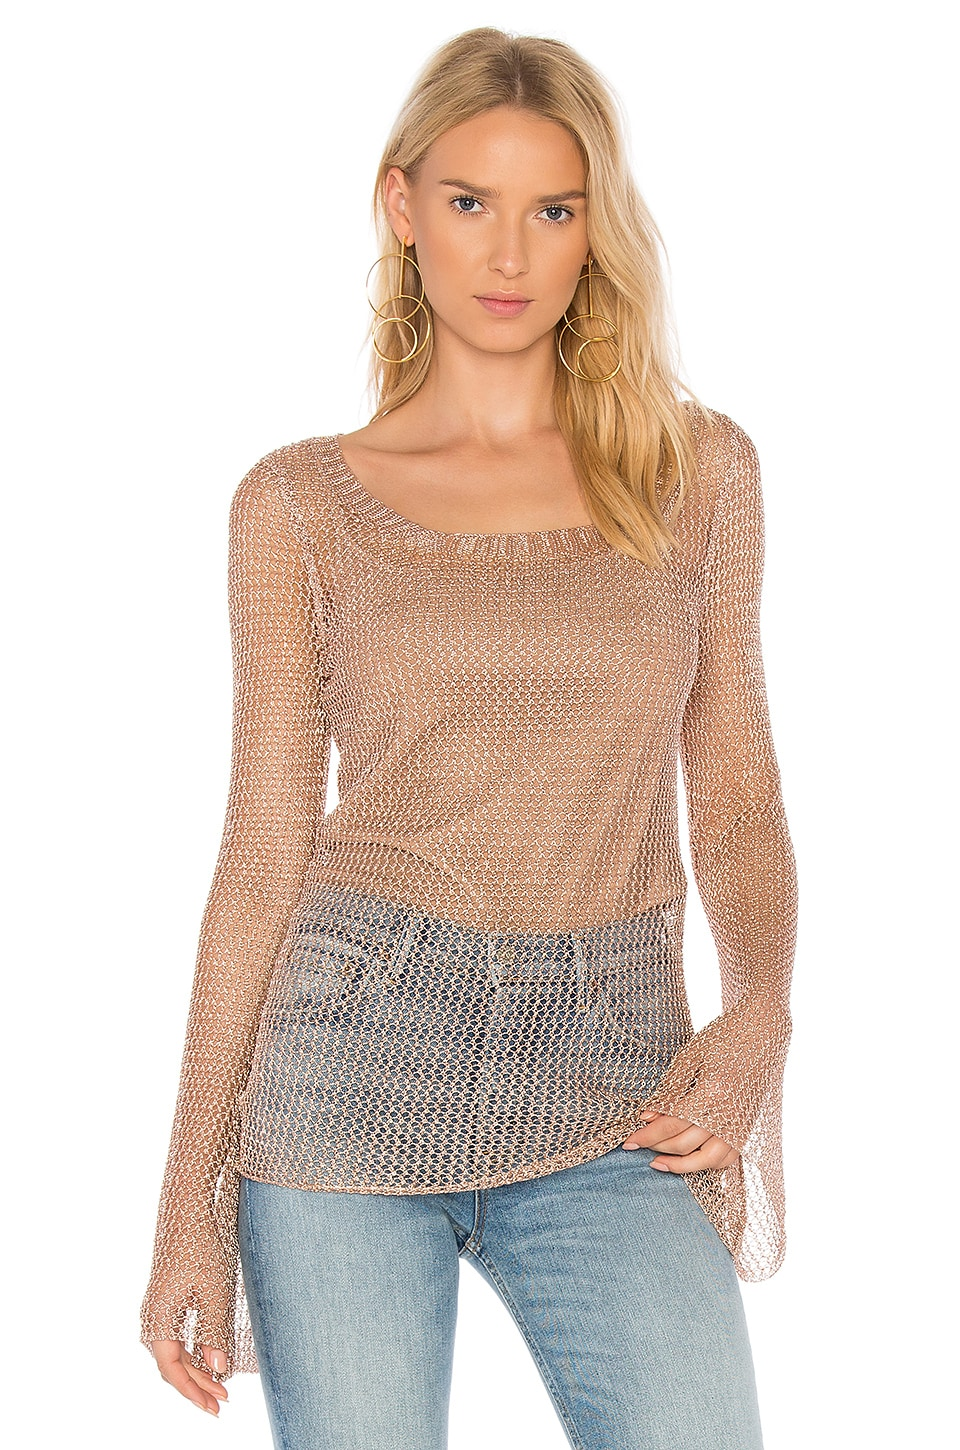 Magnolia Bell Sleeve Top by We Are Kindred